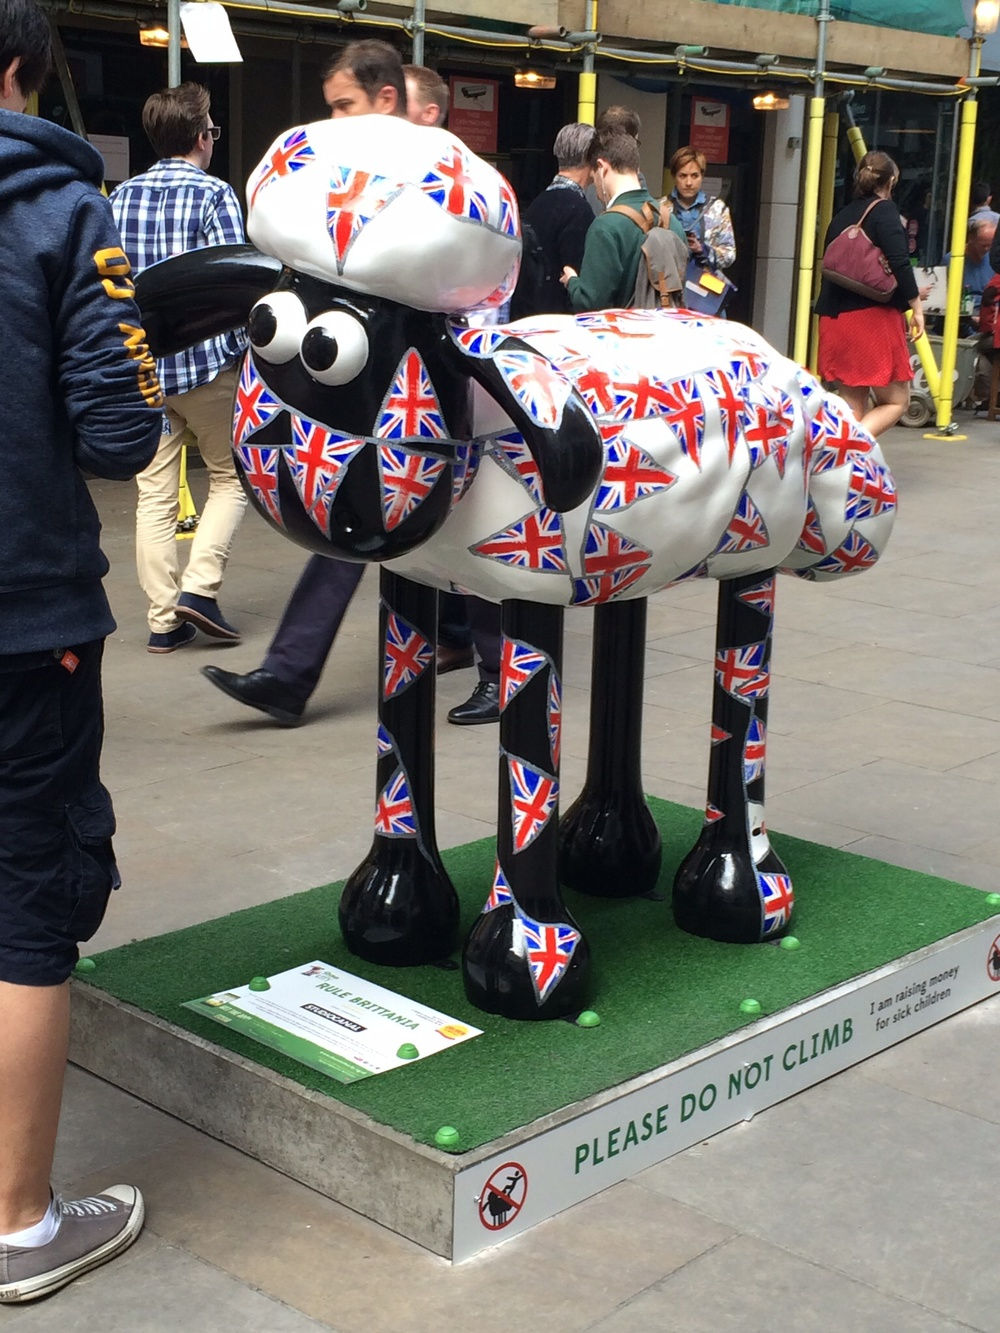 My statue is located at the corner of Carnaby Street, London.